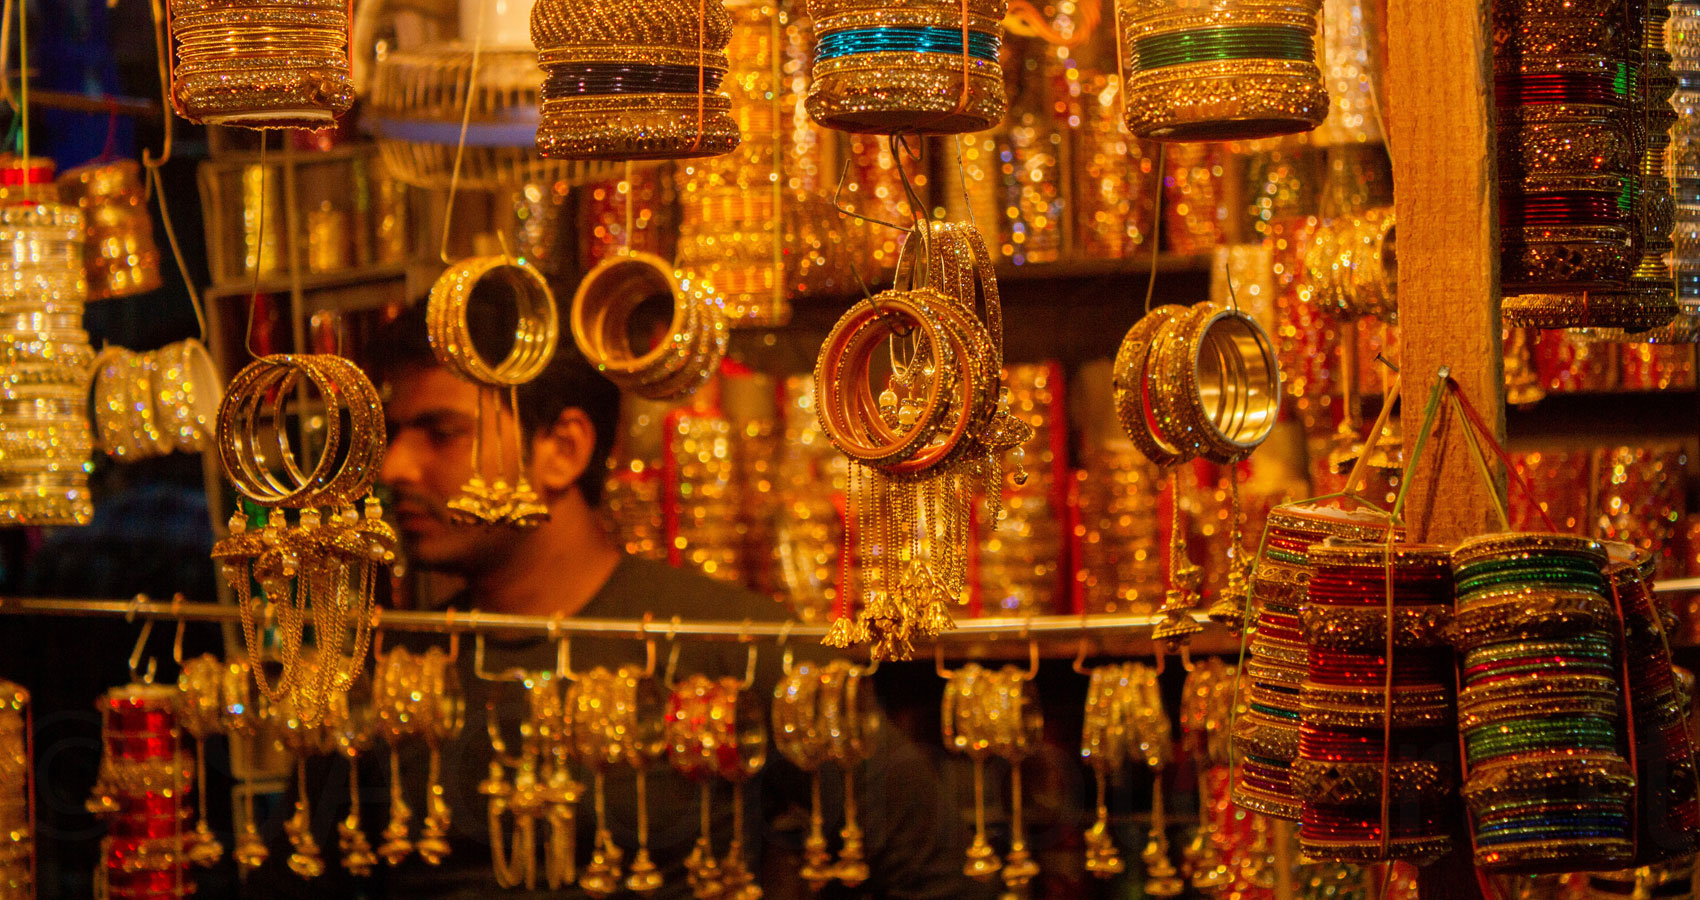 The Bangle Seller, short story by Rana Preet Gill at Spillwords.com